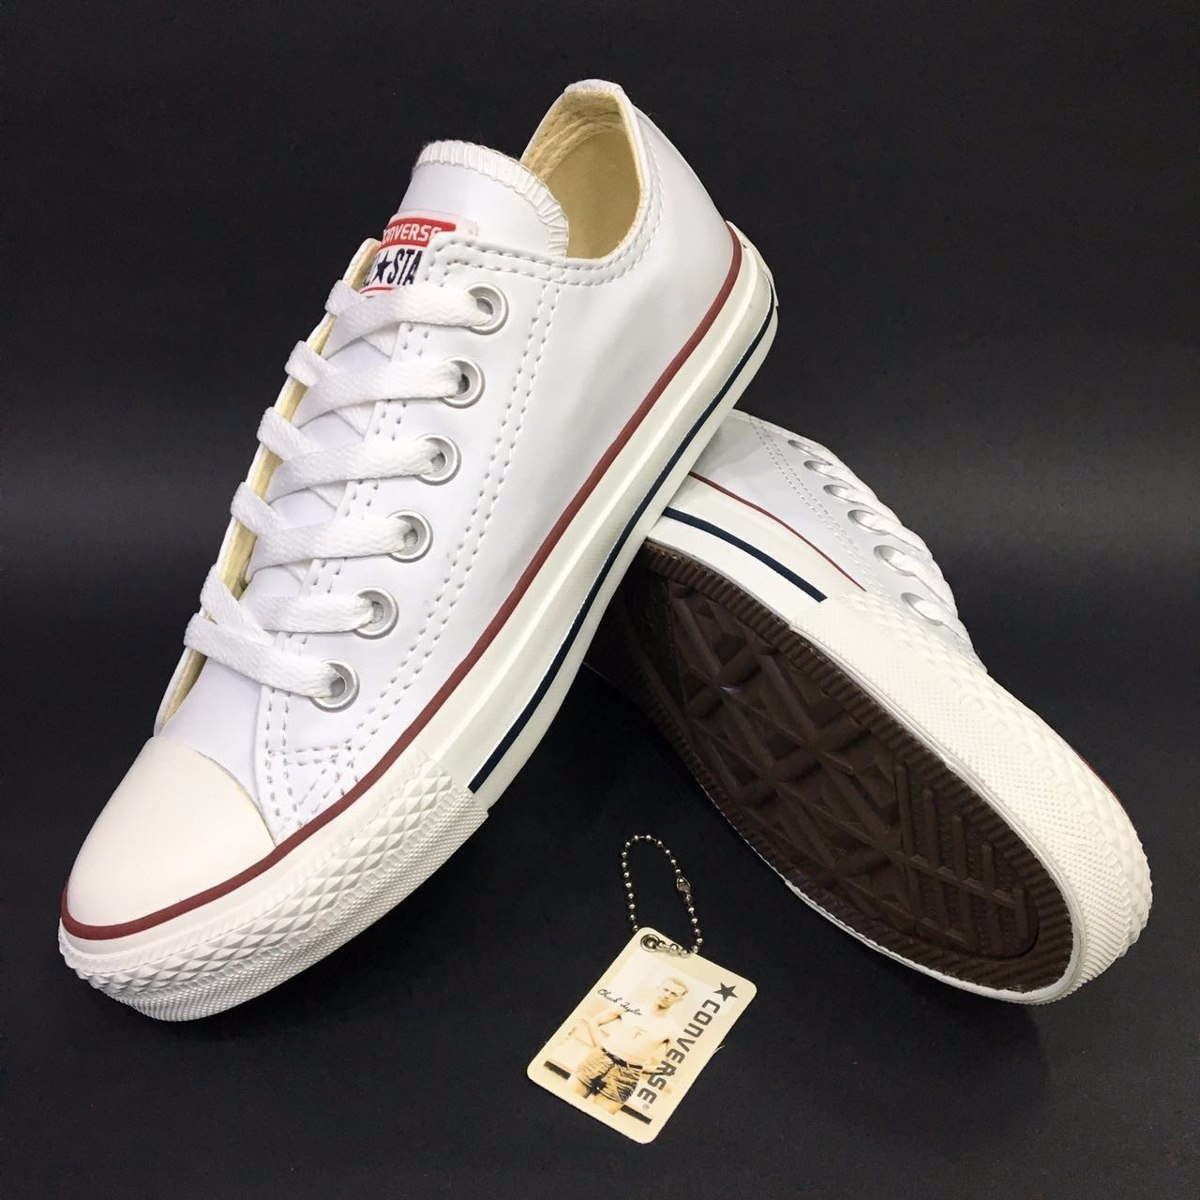 converse all star cuero blanco